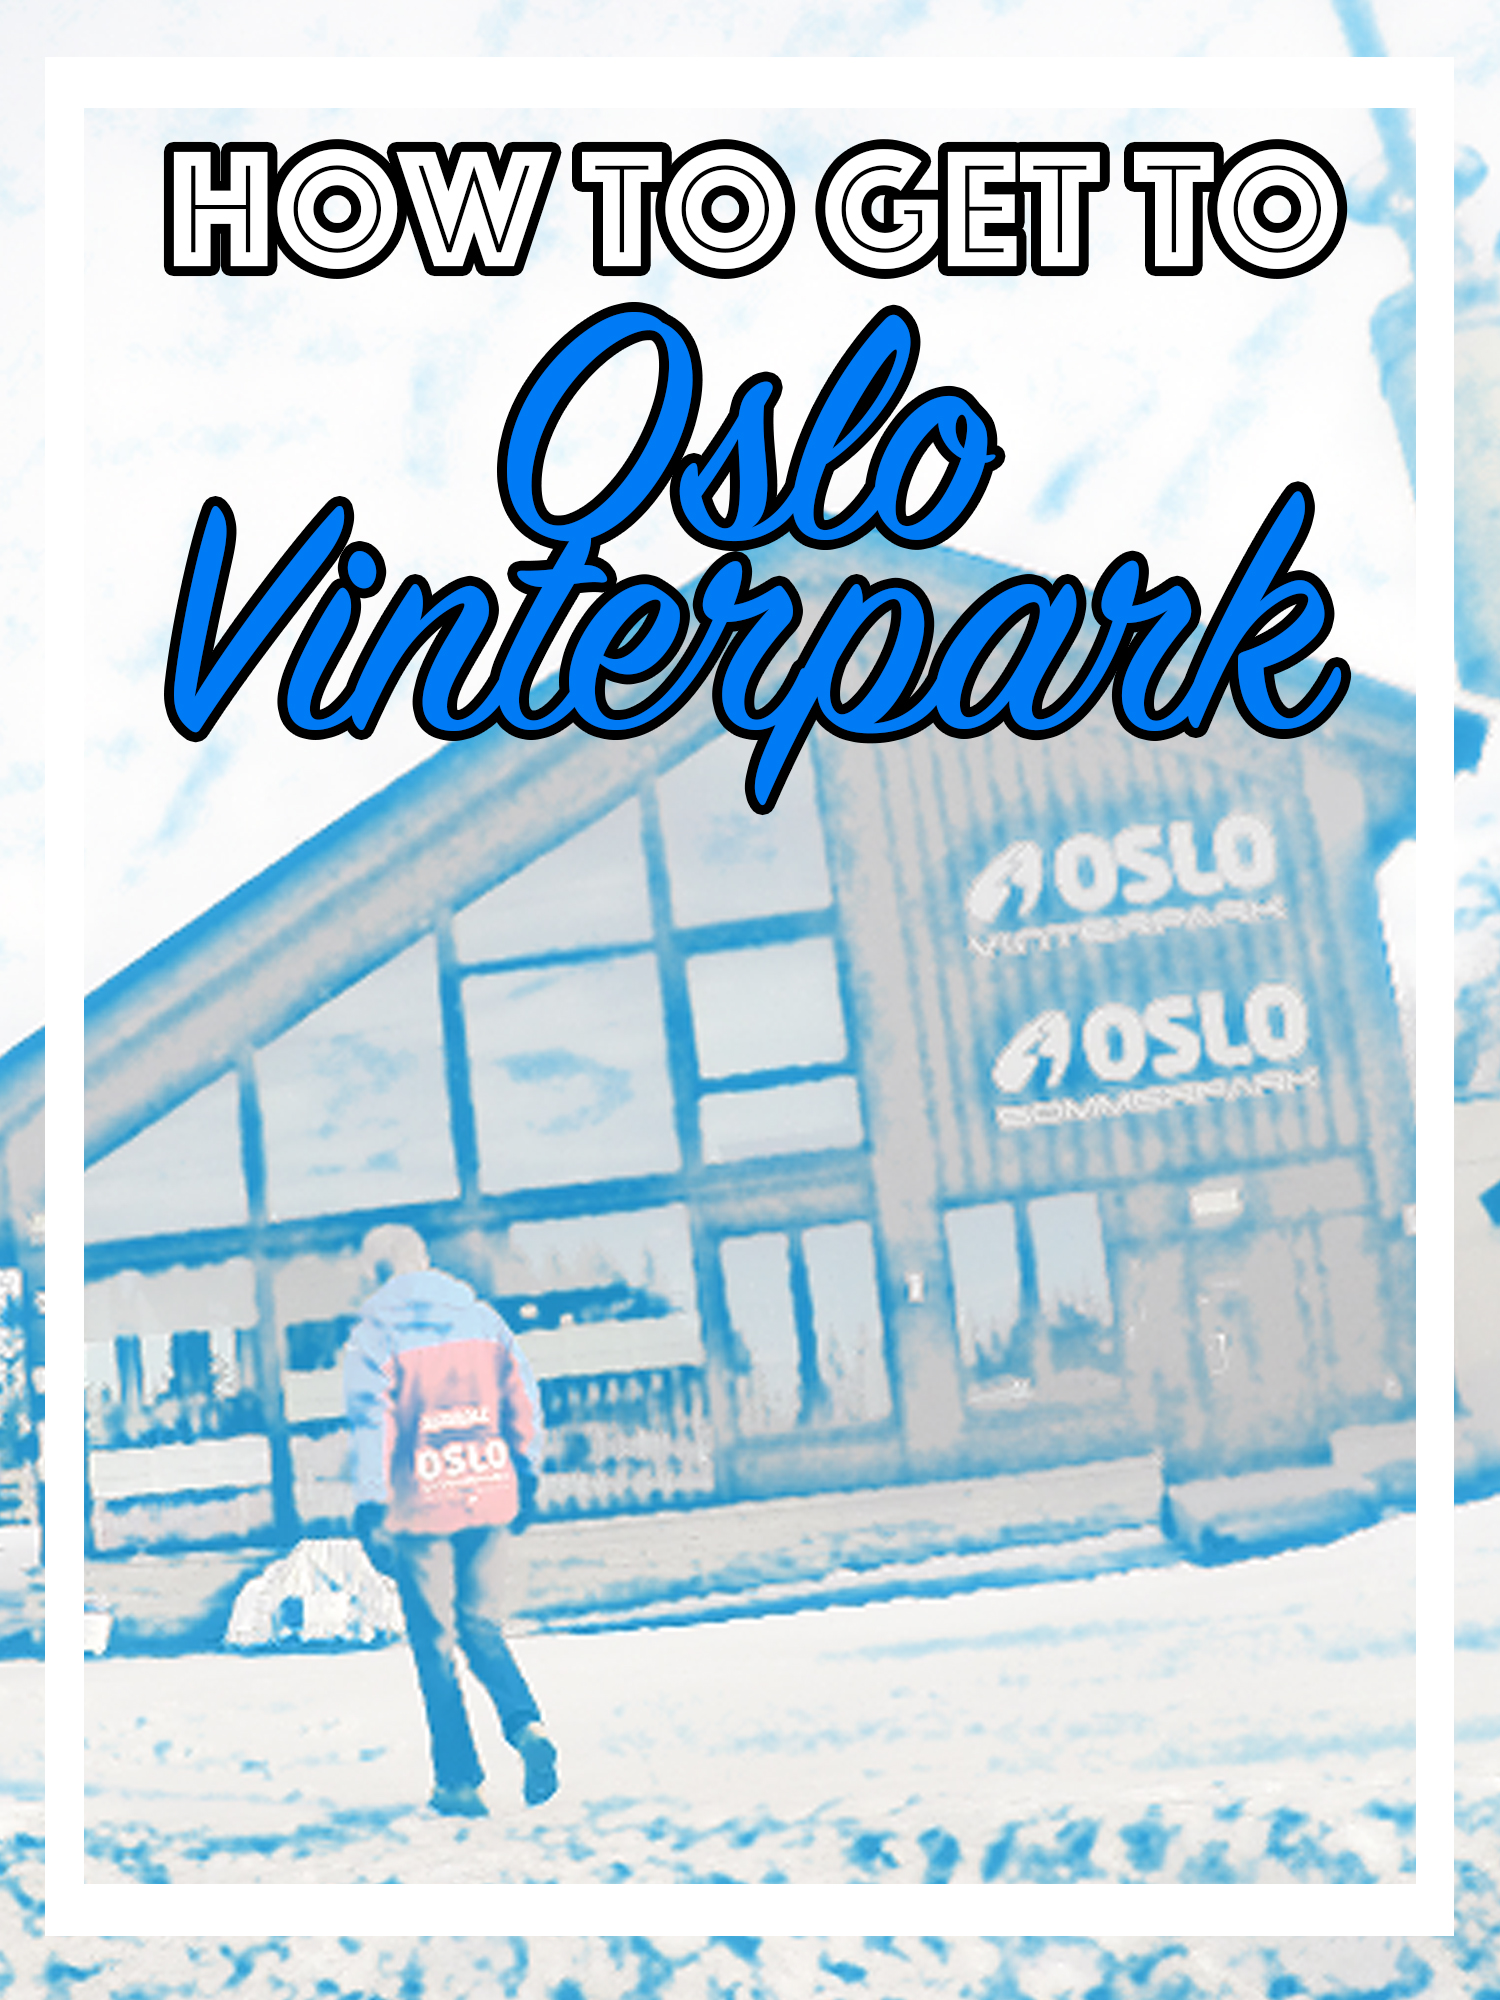 how to get to the Oslo Vinterpark